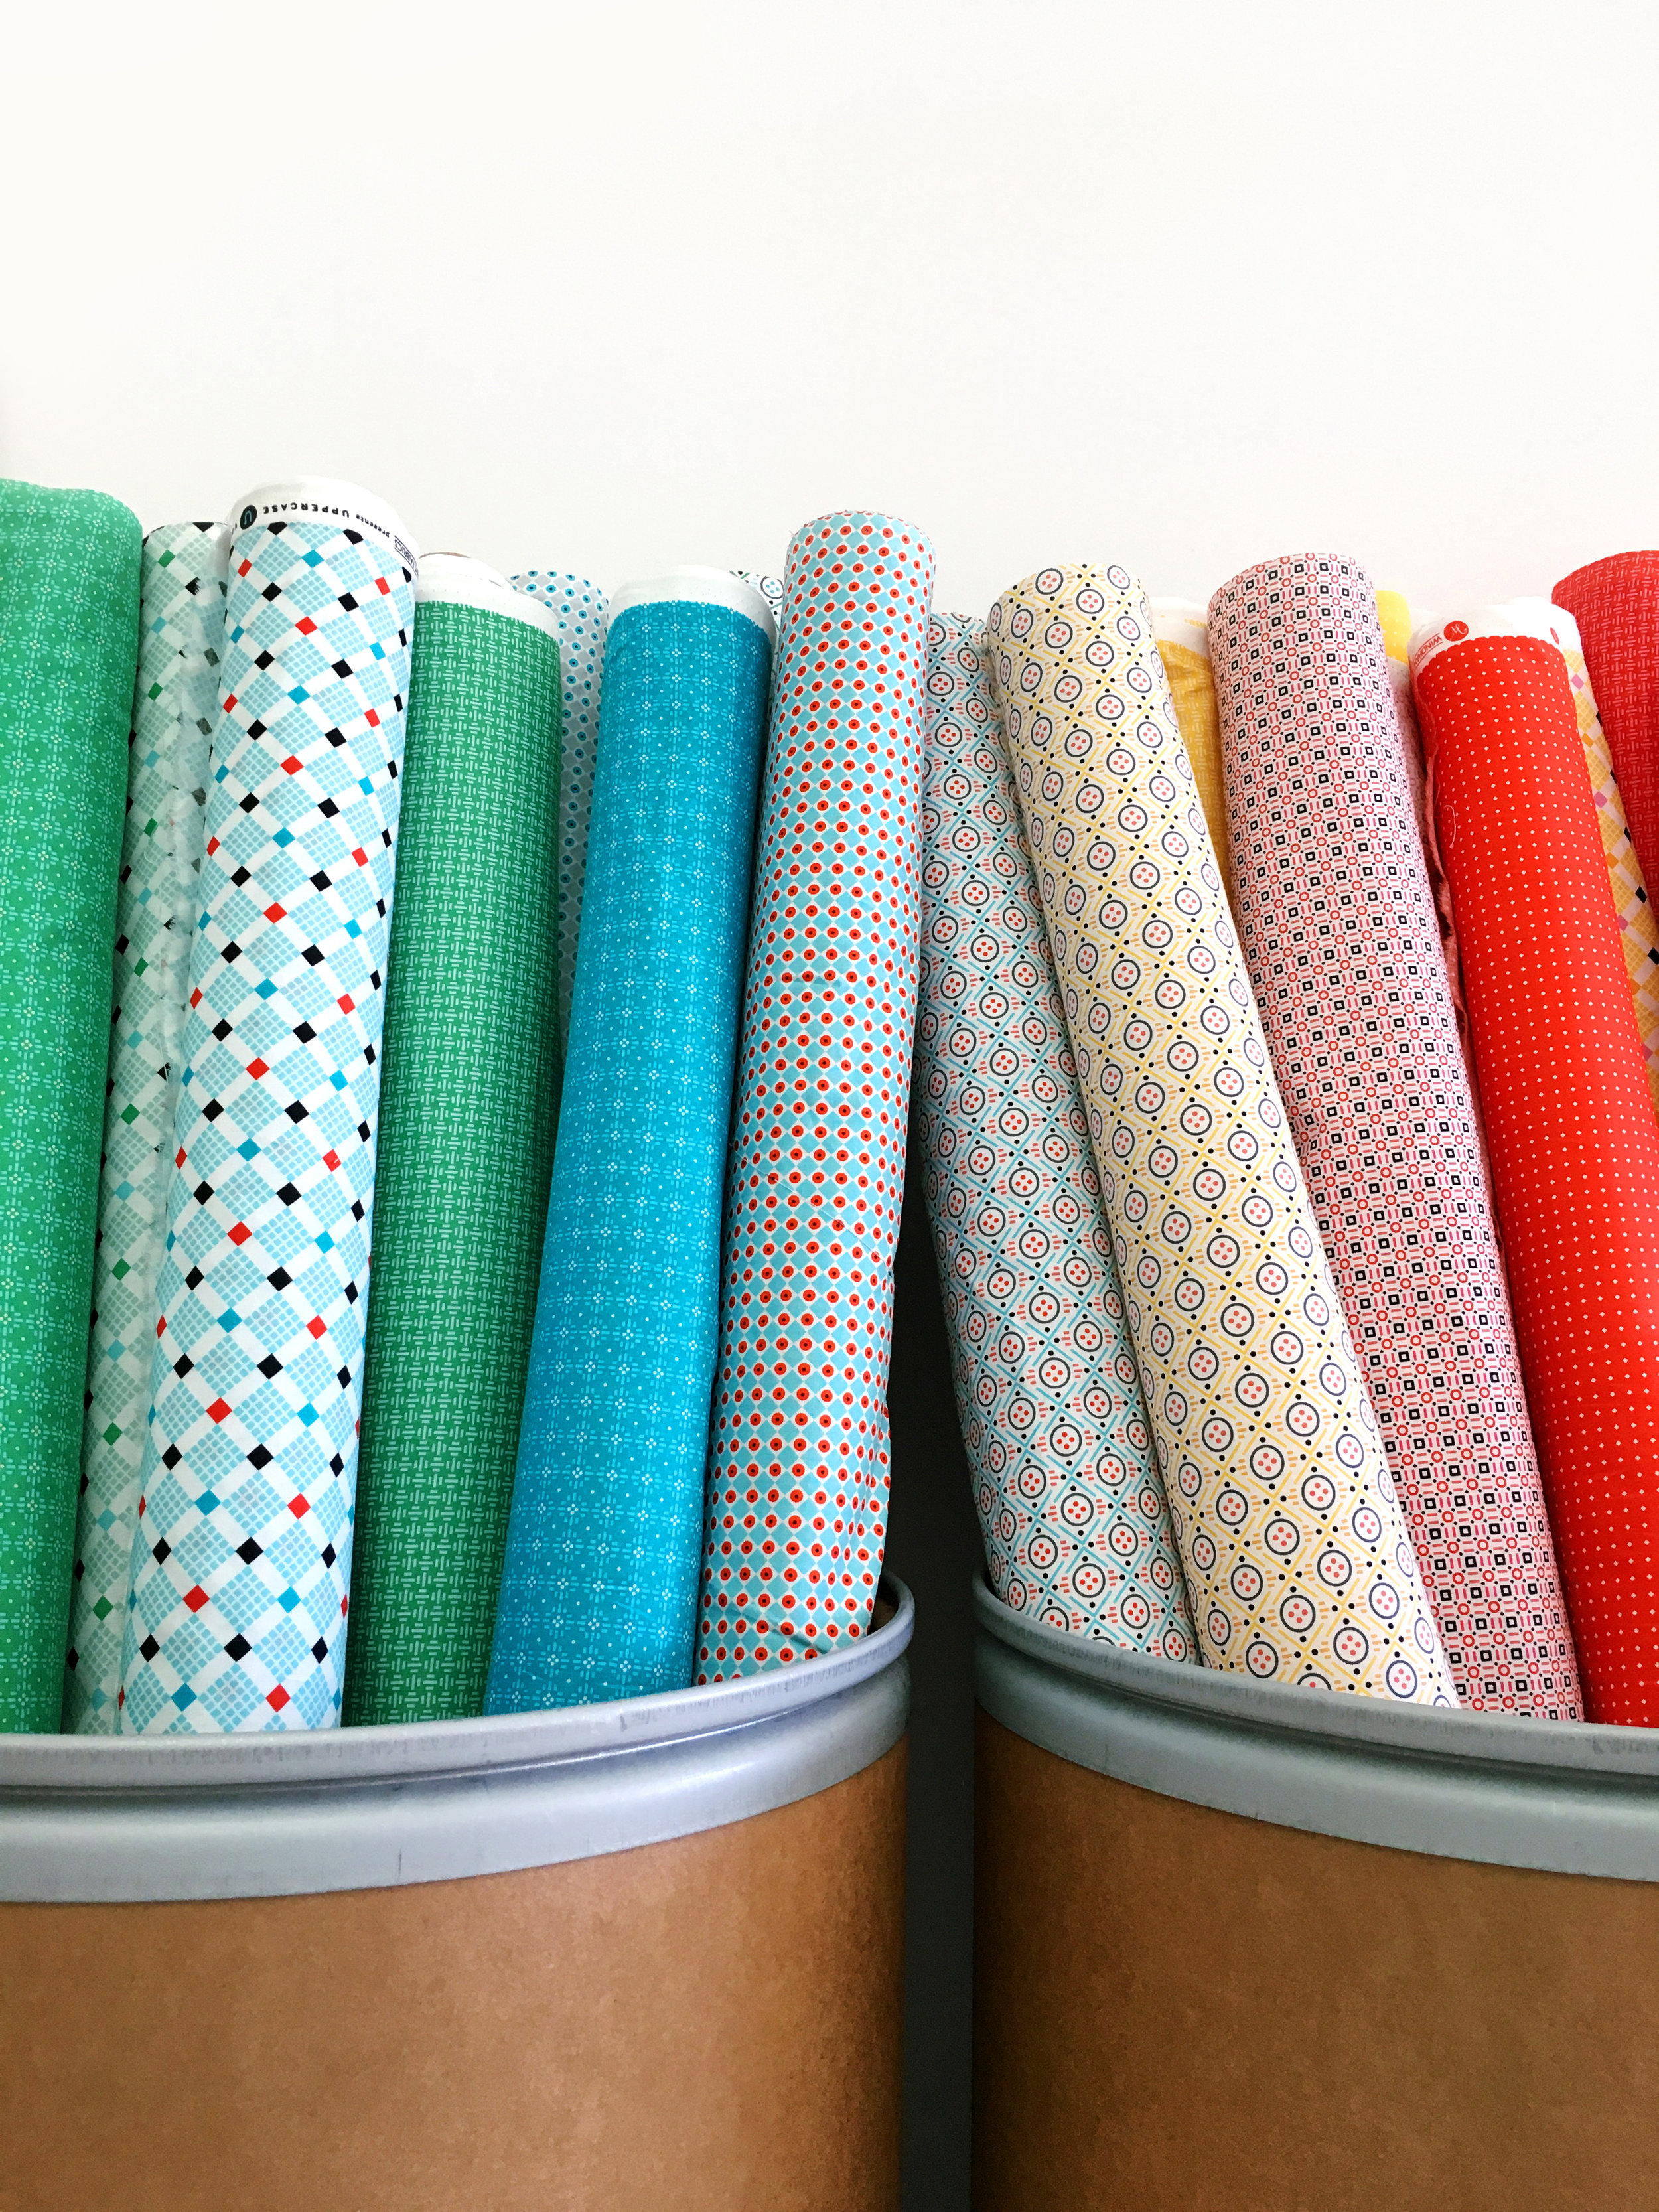 Fiber drums purchased online from Uline.ca were the perfect solution for storing 32 bolts of fabric!